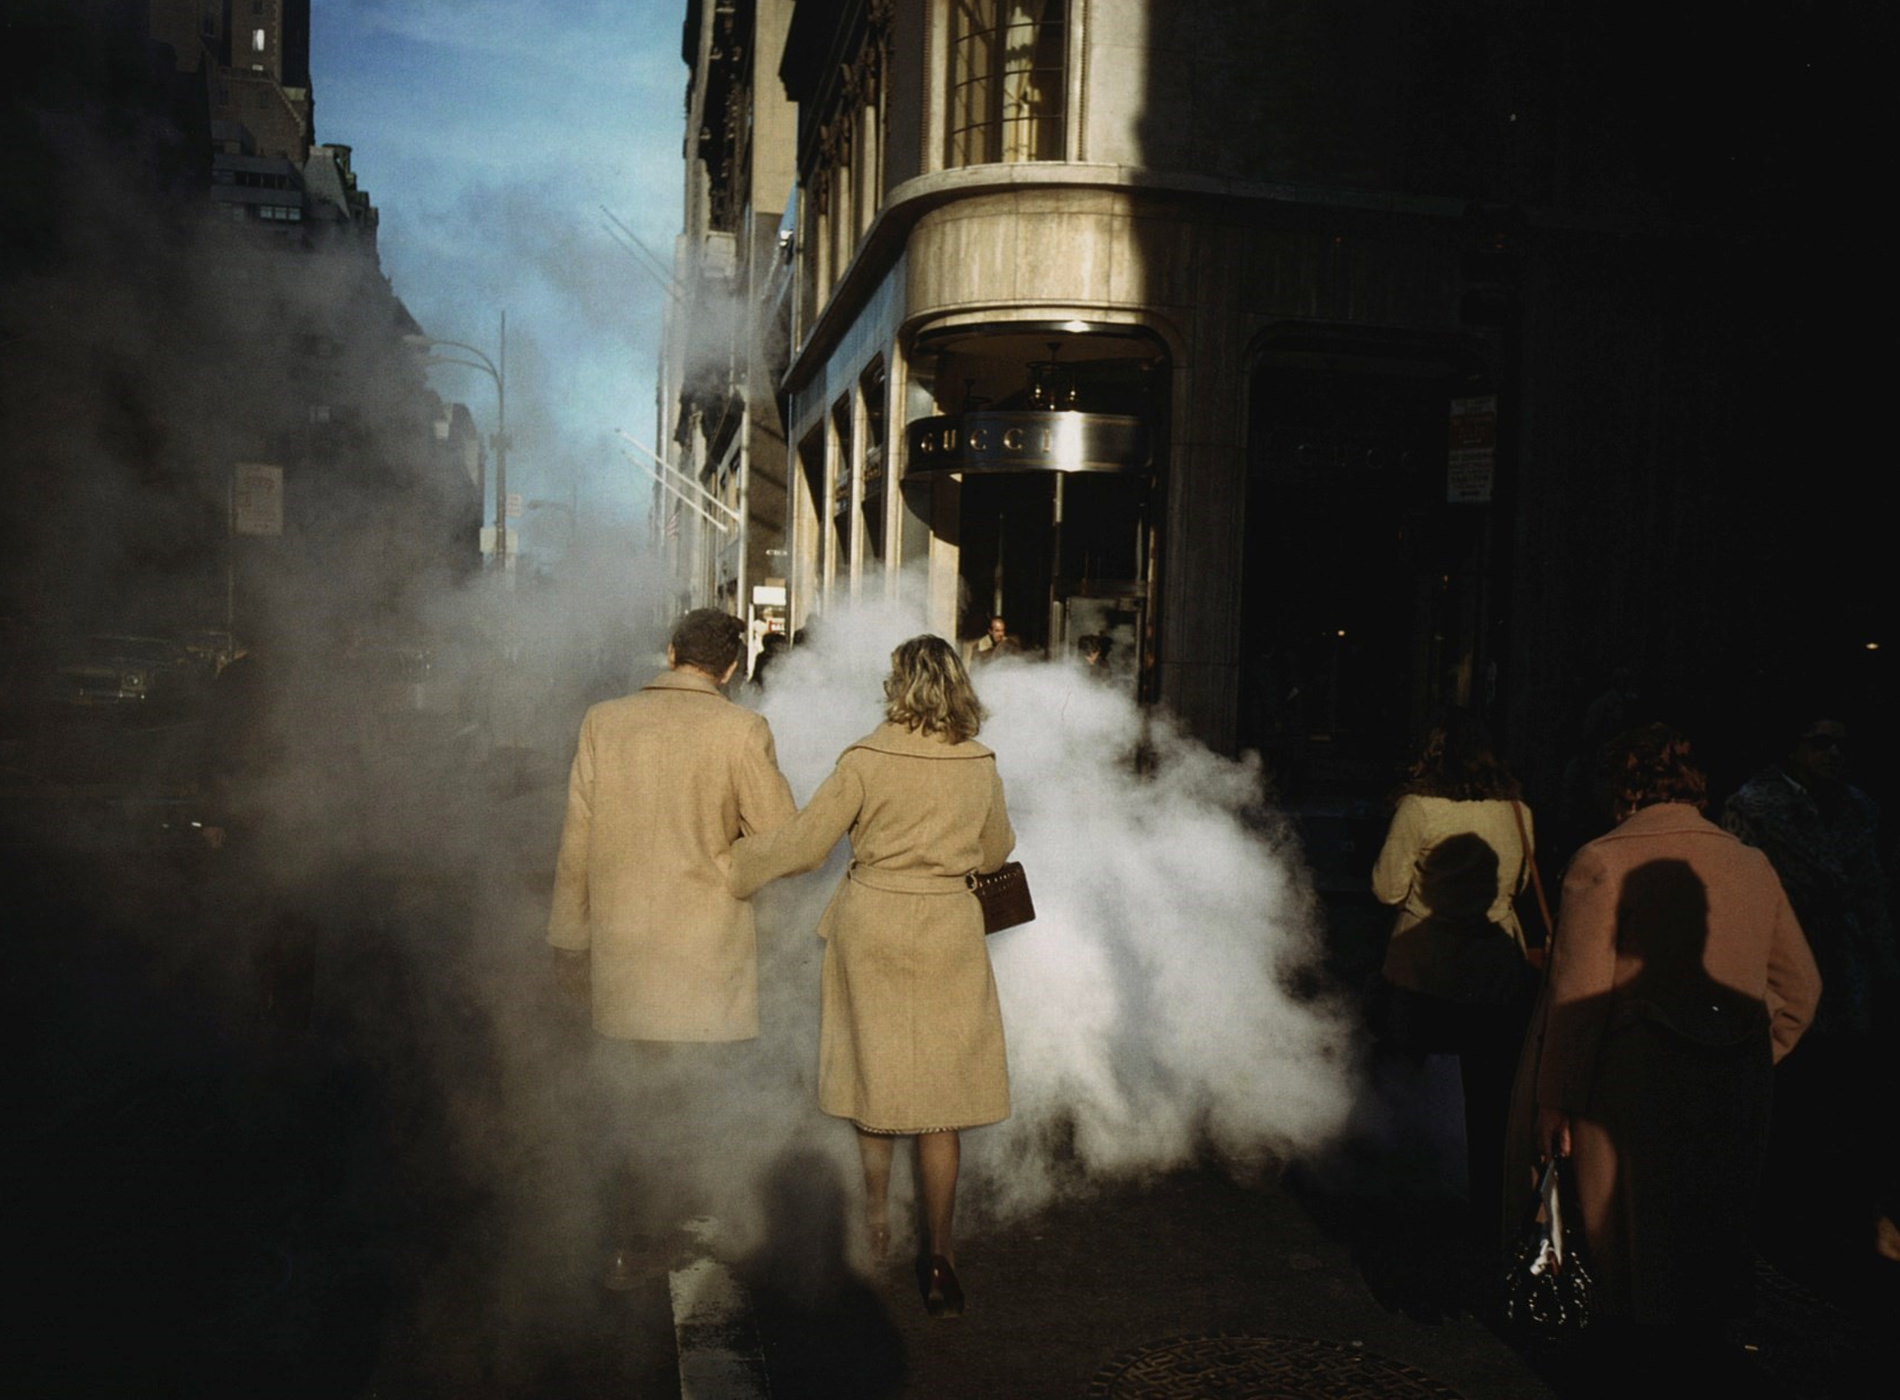 Joel Meyerowitz, Camel Coats, New York City, 1975